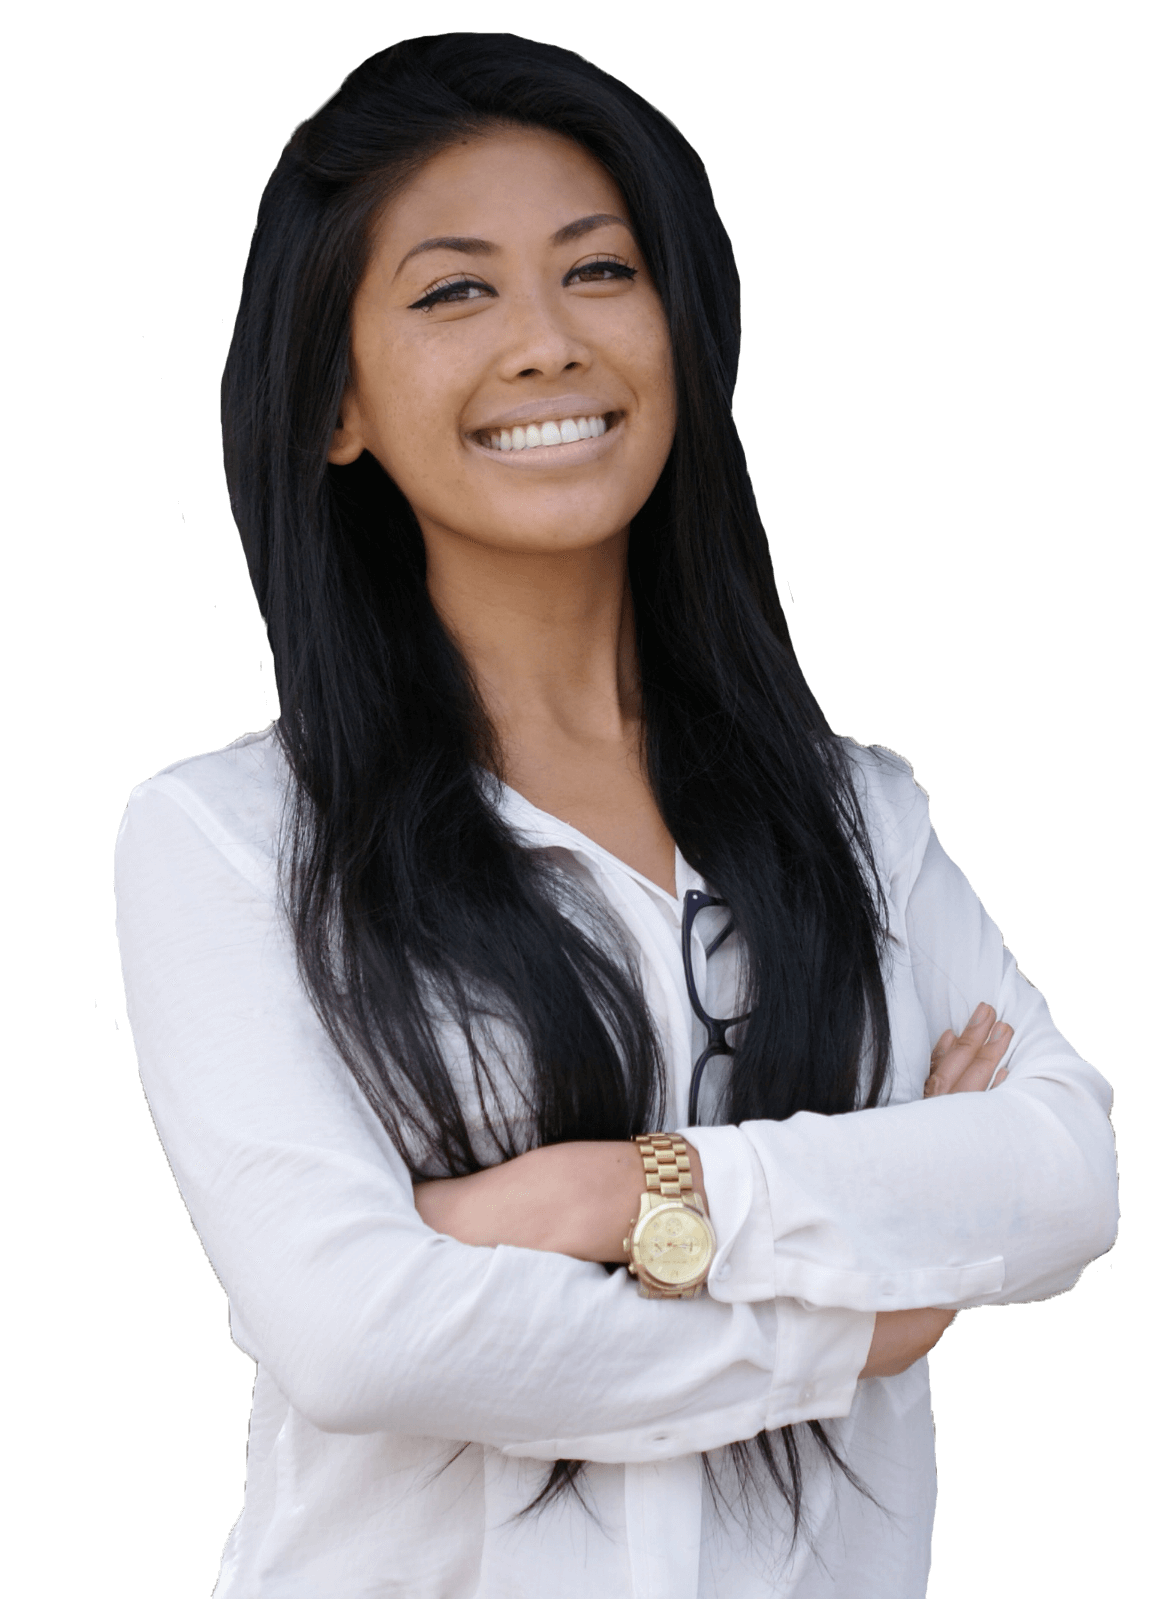 Asian female Orthodontist smiling with hands crossed